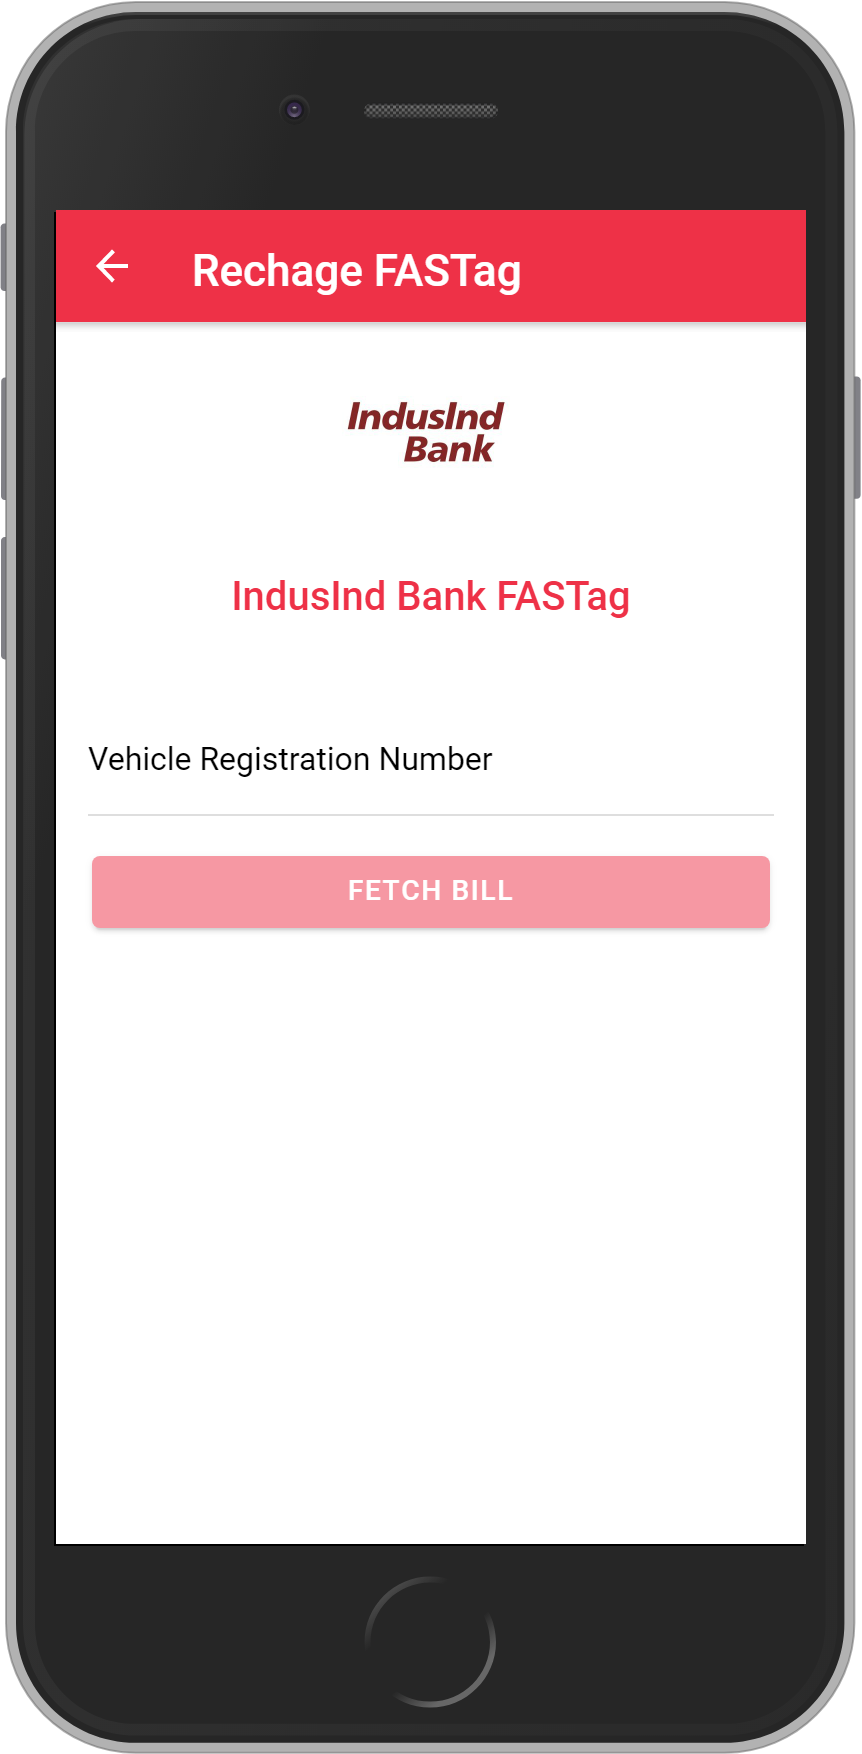 Get UNLIMITED <b>0.1%</b> CASHBACK on IndusInd Bank FASTag Recharge.